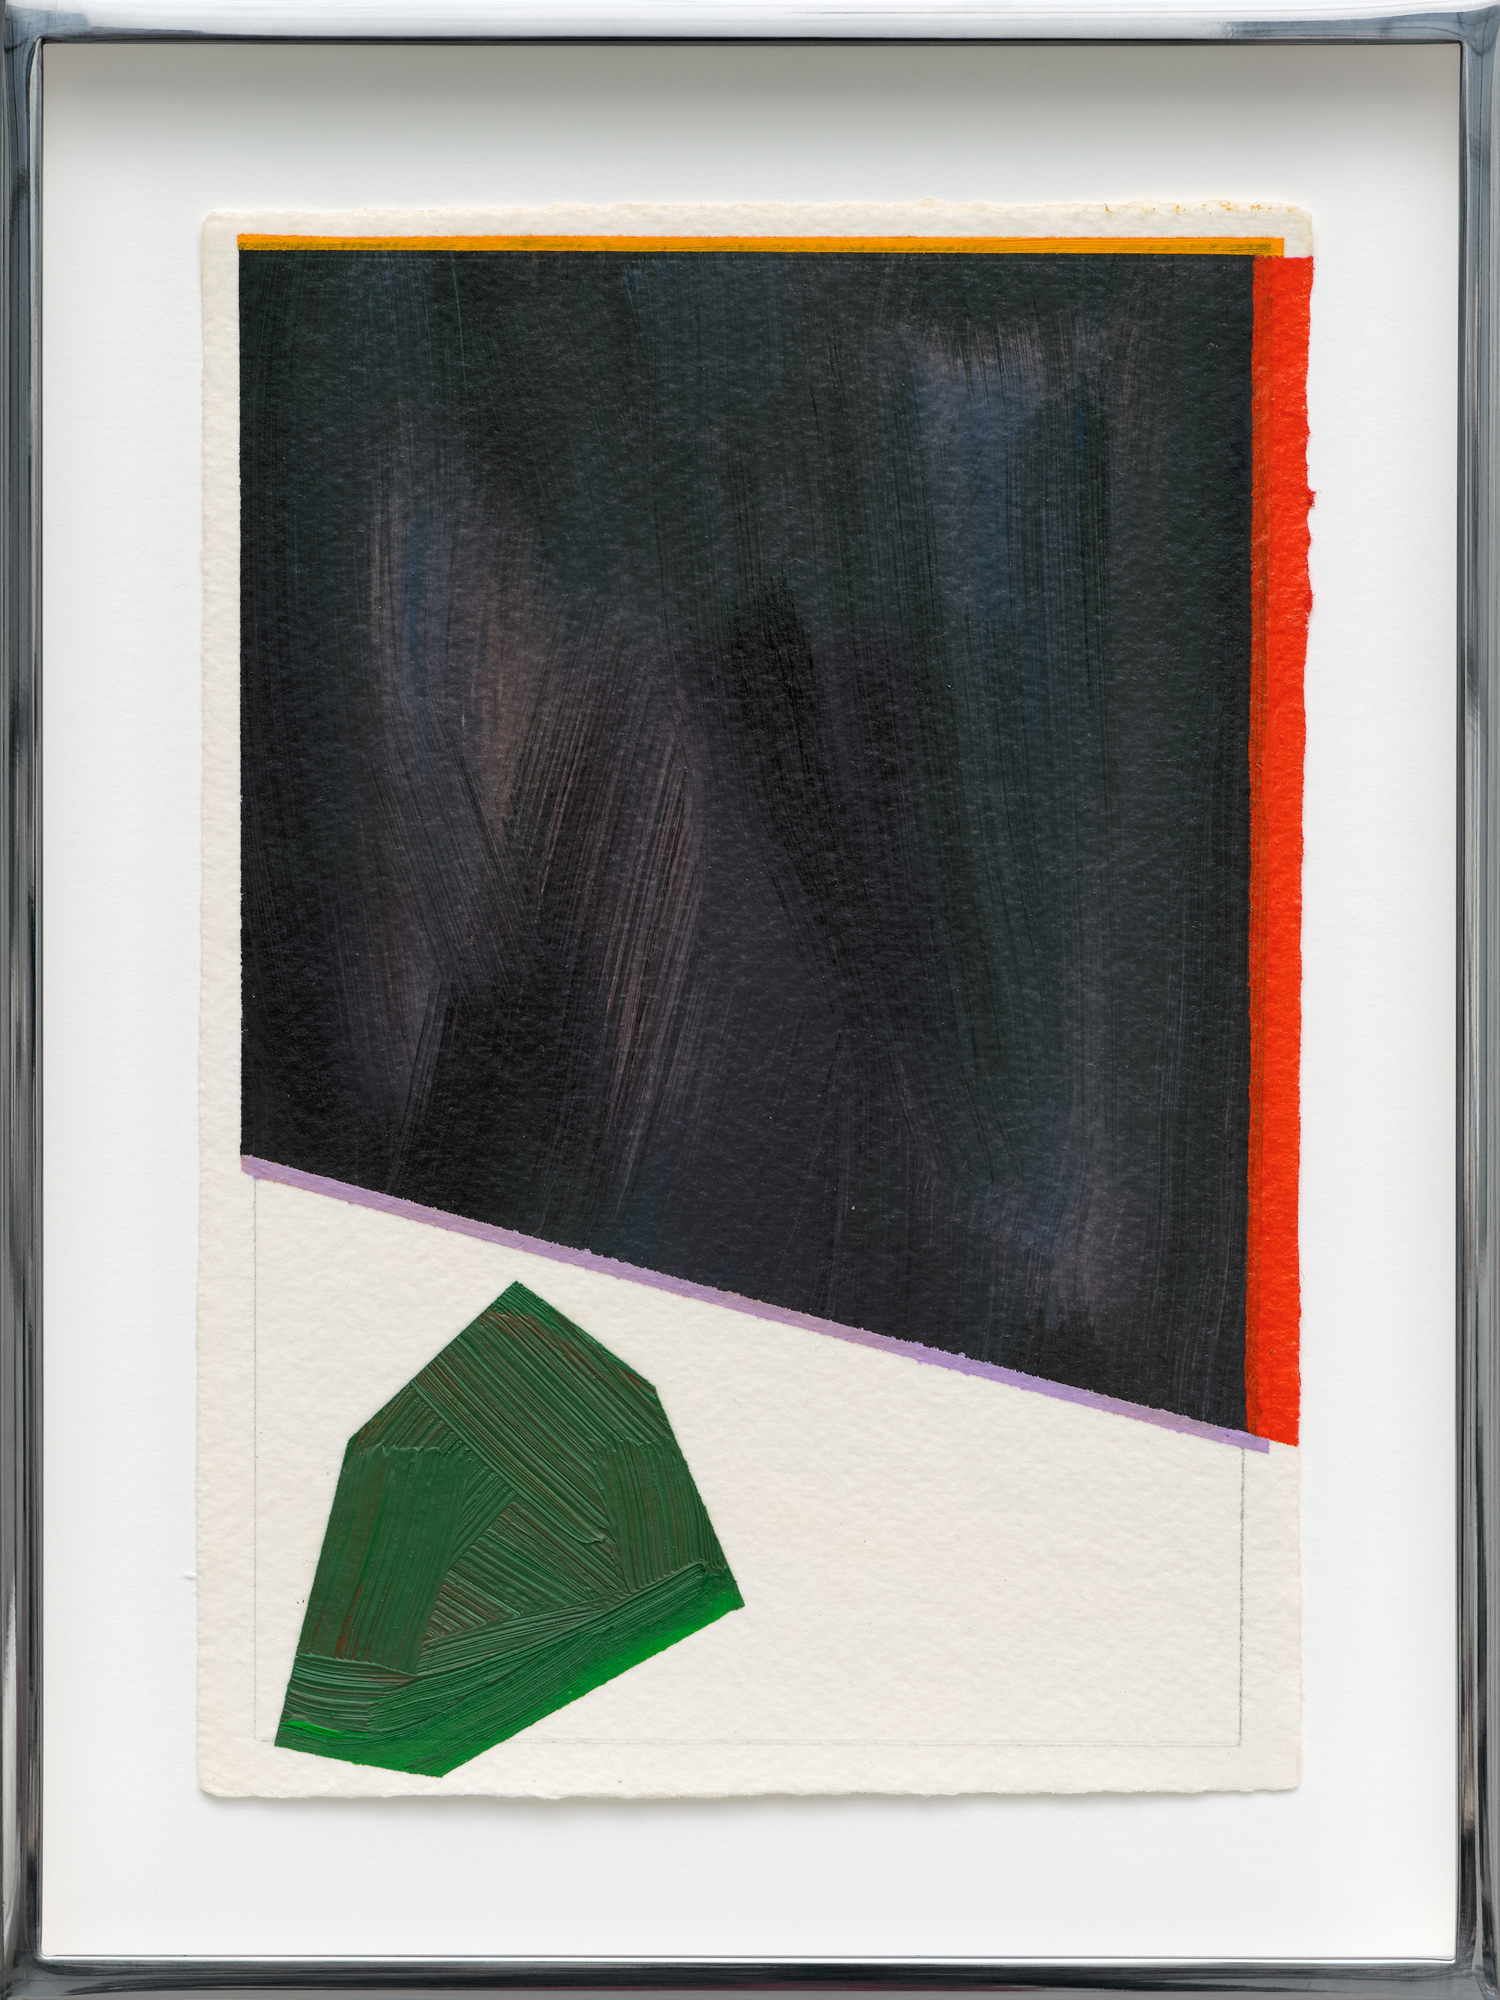 "(Untitled) Oil Study No. 25,  2013 Oil on prepared paper 8 ¼"" x 5 ¾"" (10 ¼"" x 7 ¾"" x 1 ¼"" framed)"